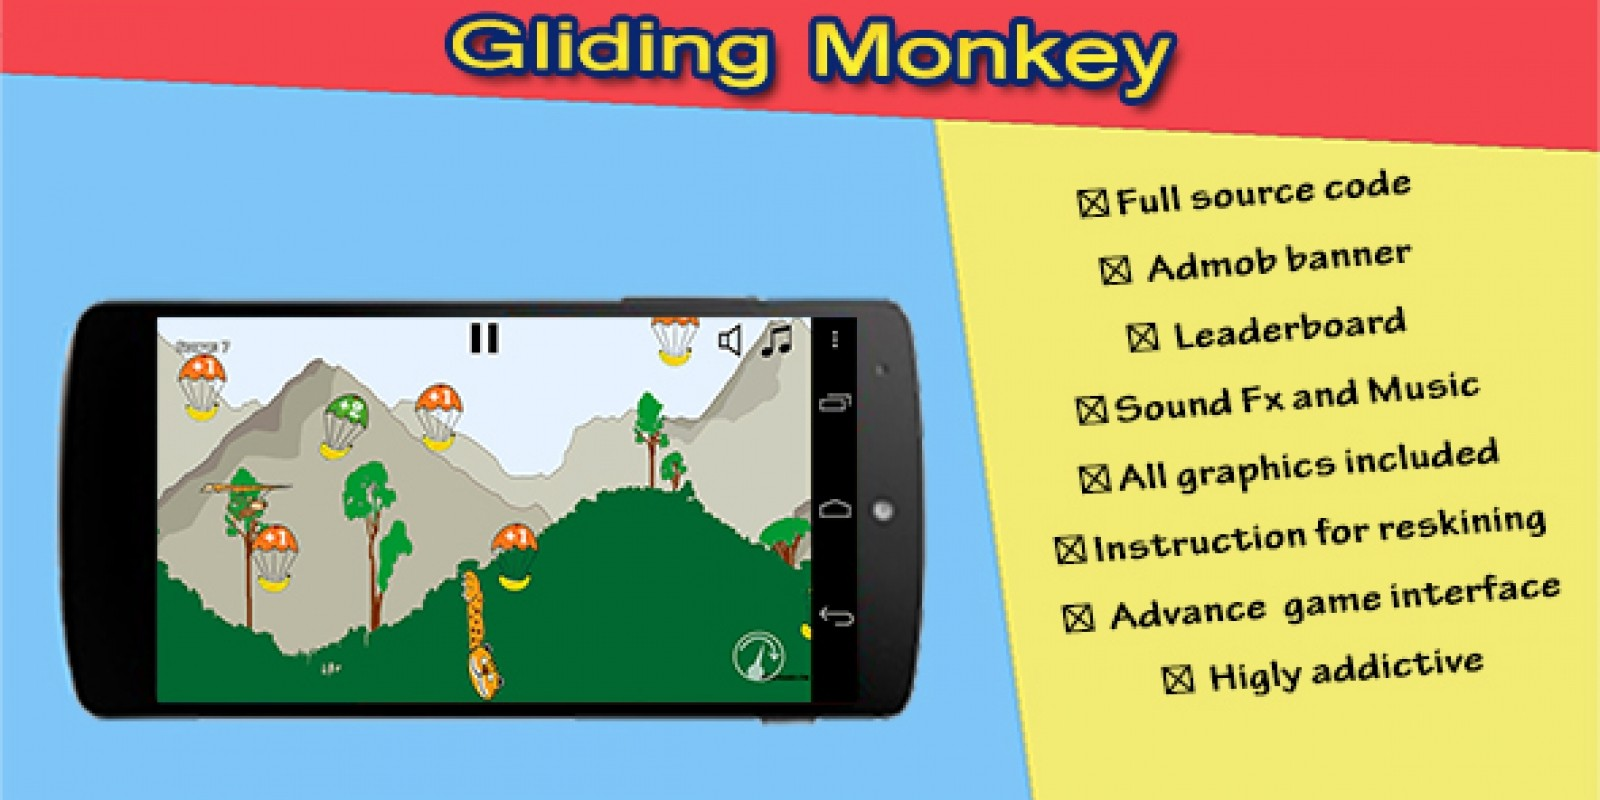 Gliding Monkey Trilogy Android Game Source Code